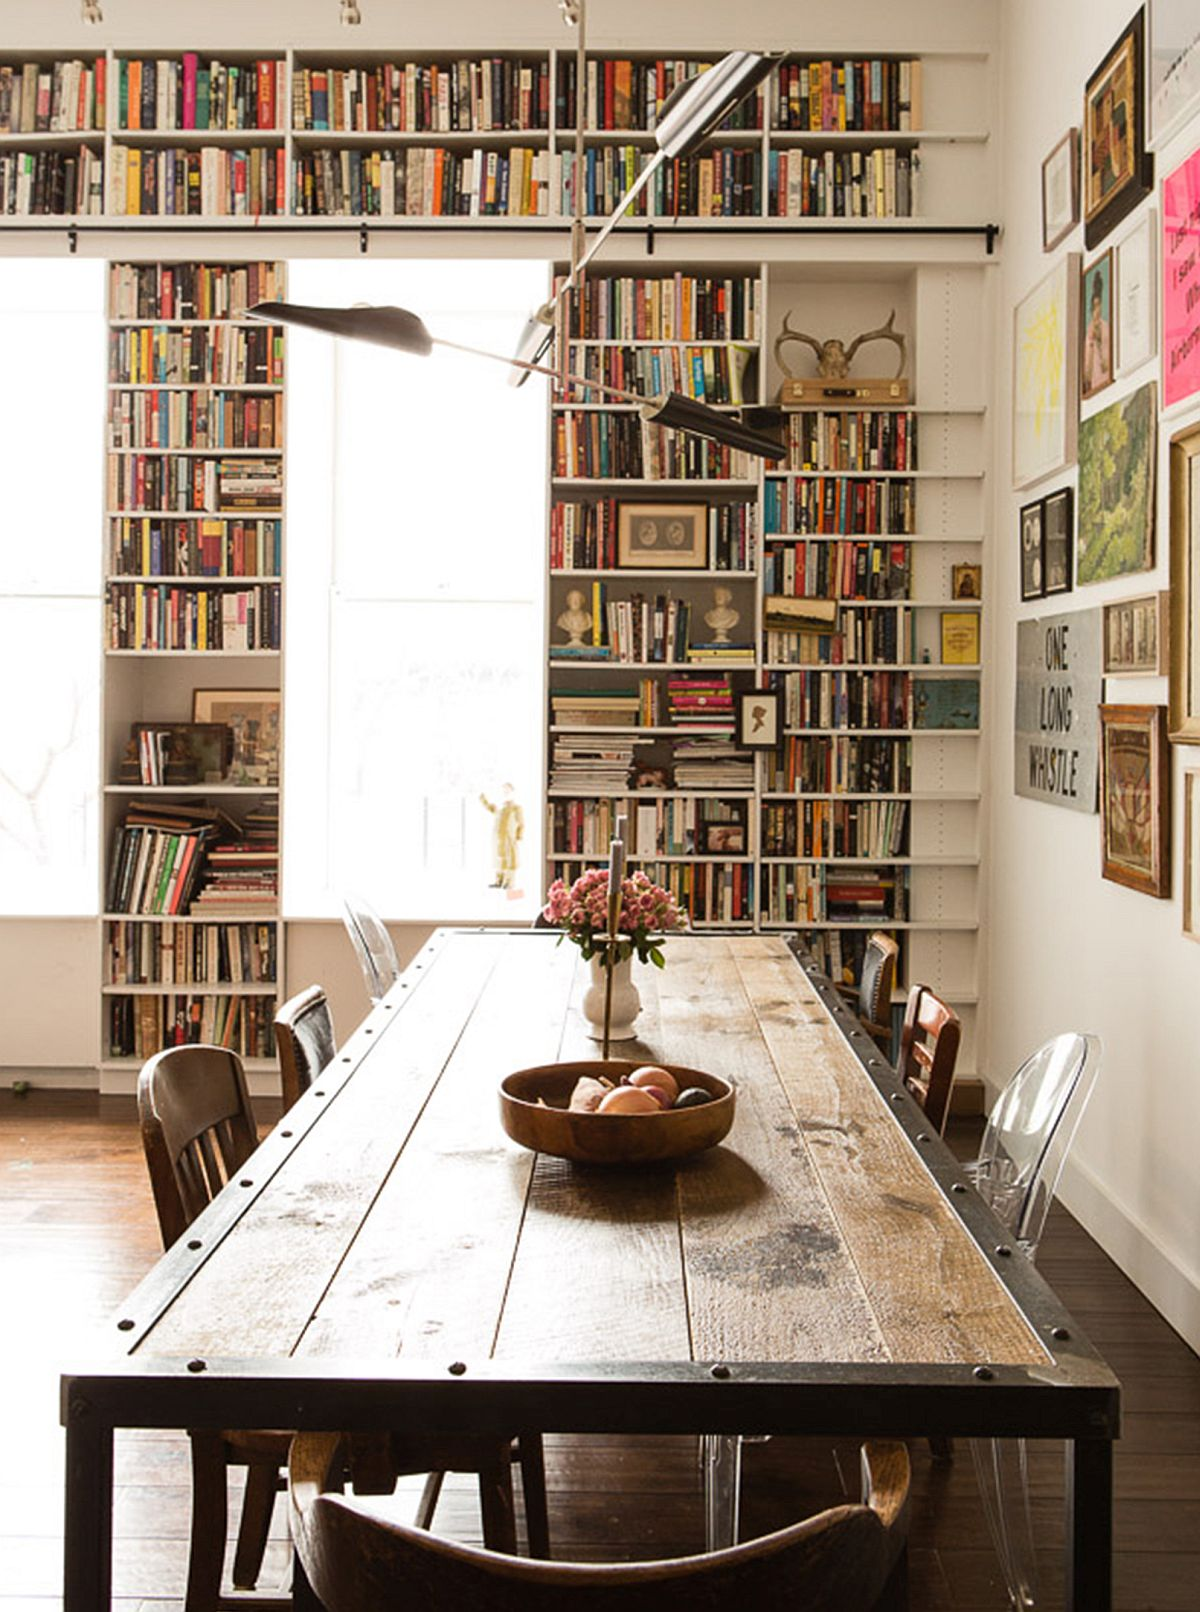 Industrial Study Room: Filled With The Romance Of Art And Books: Brooklyn Heights